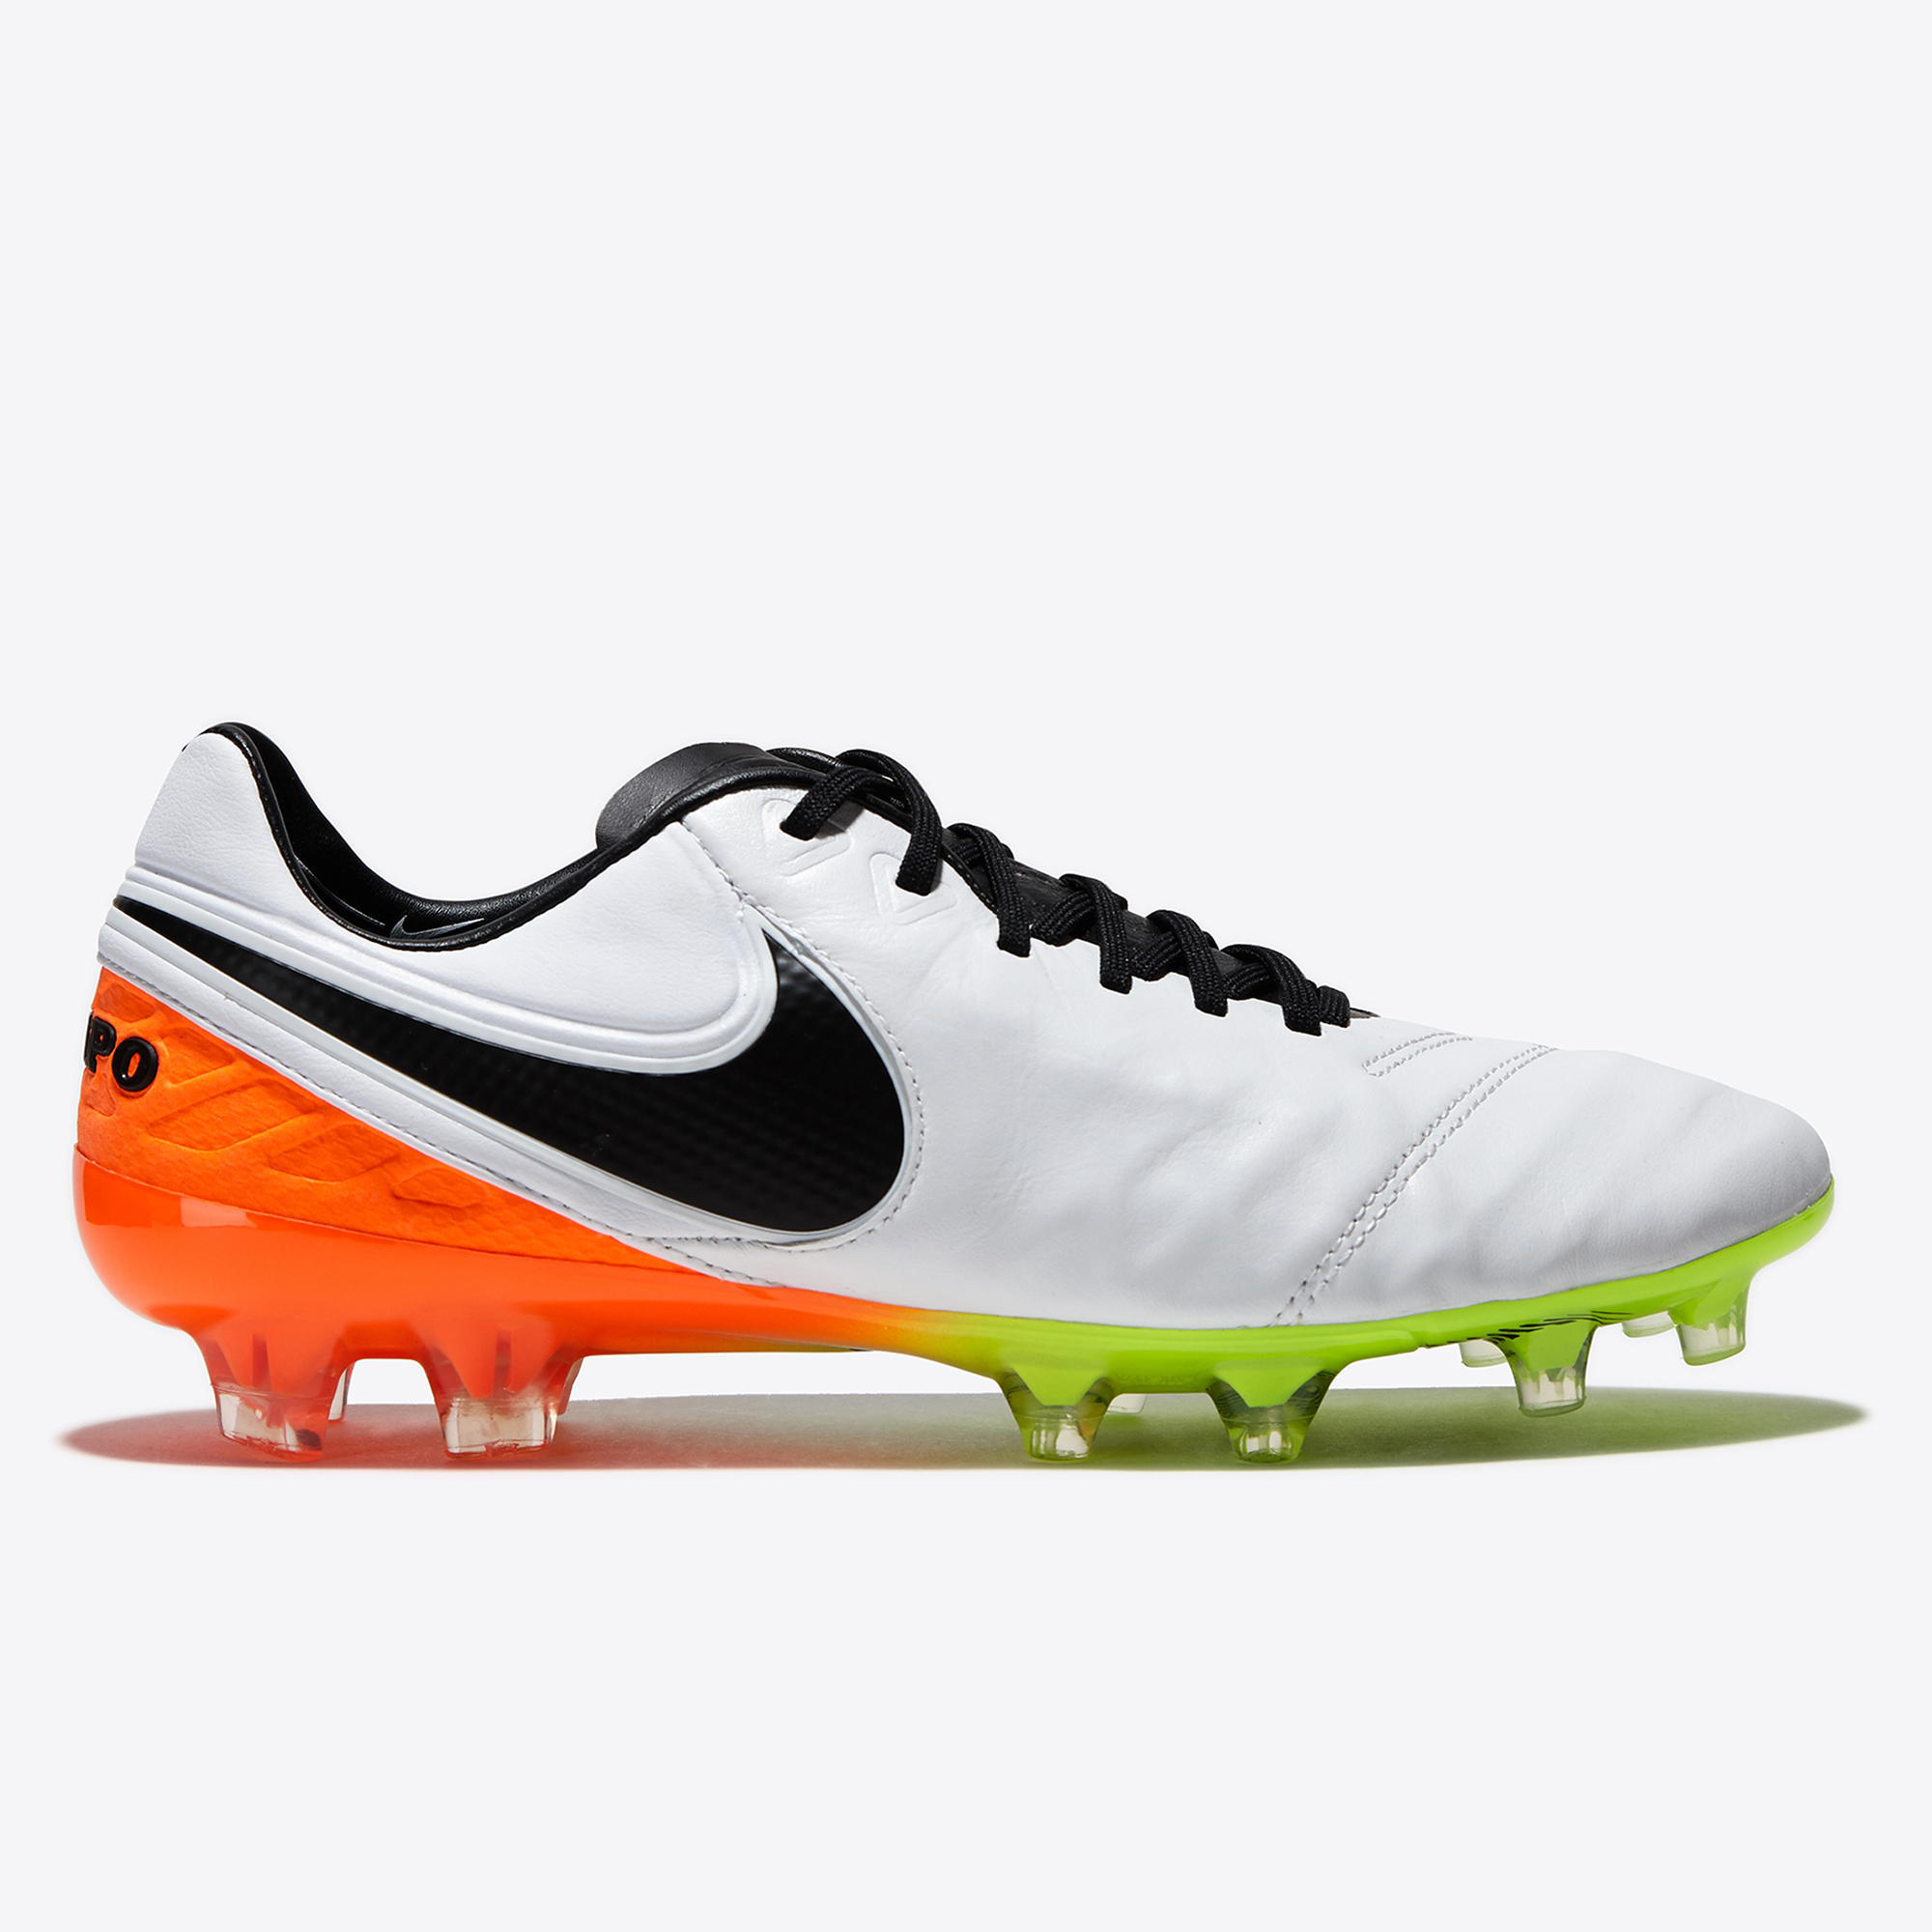 sale retailer 52508 29e38 Buy Nike Tiempo Rugby Boots Legend 6 (VI) & older models (V ...